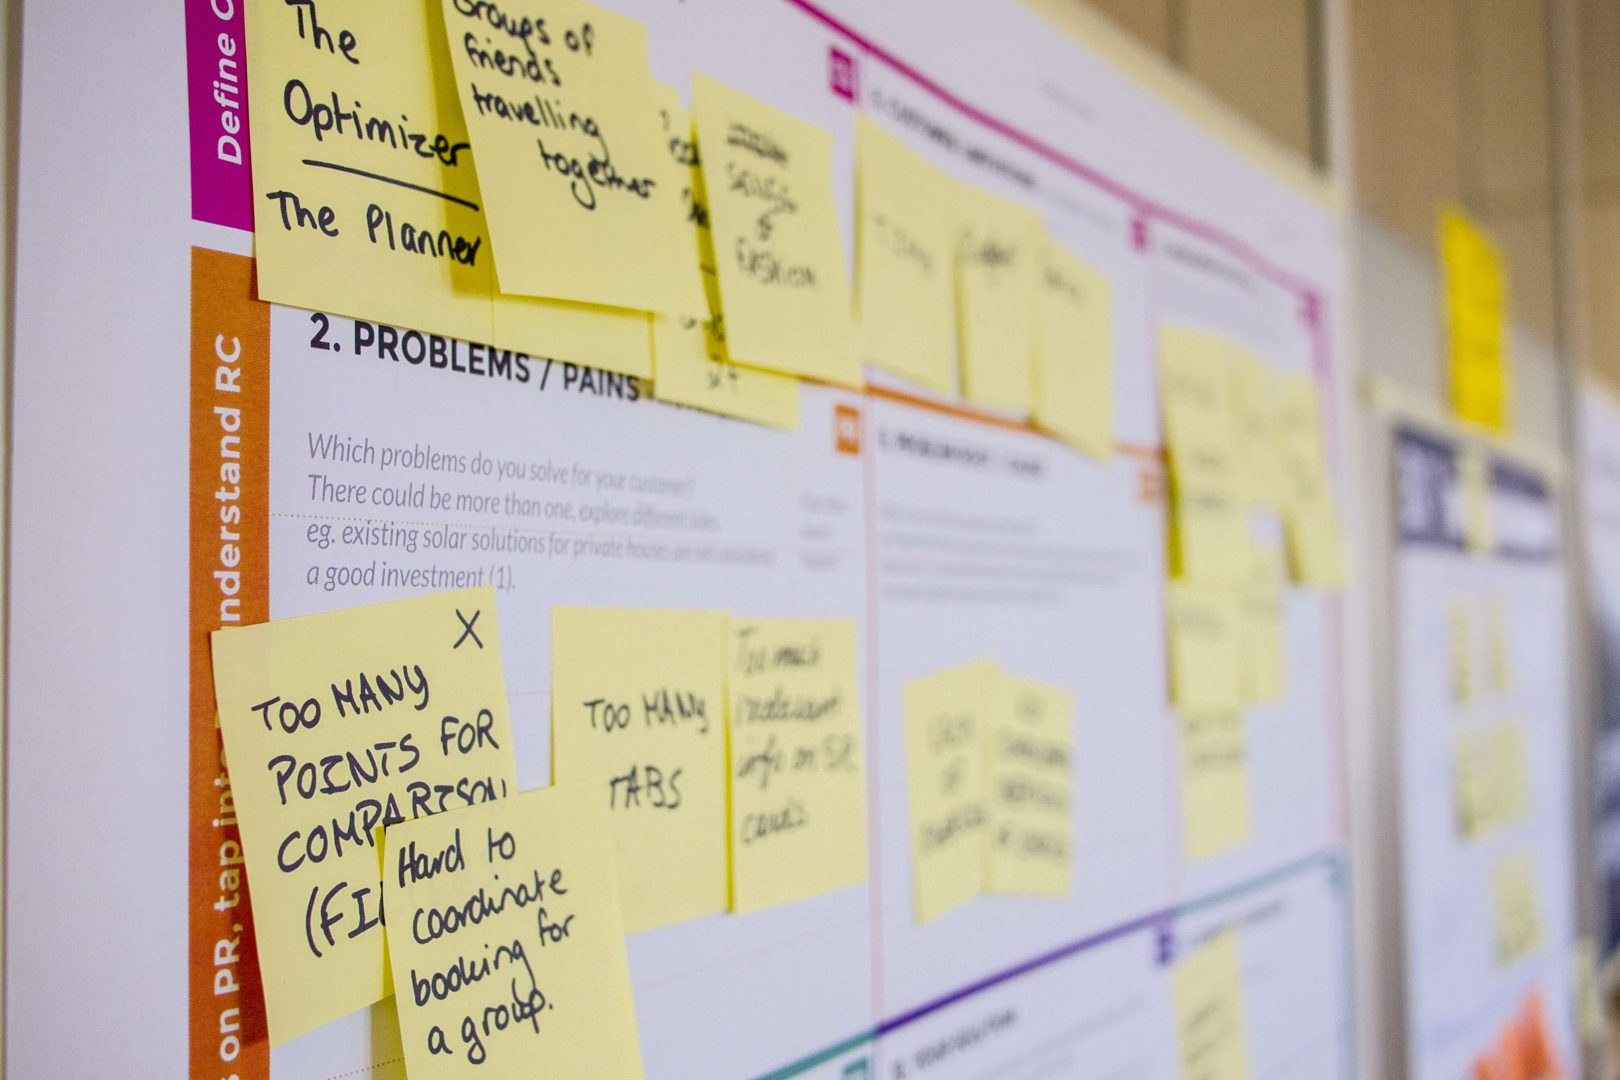 Agile and Scrum are great methods for syncing with your remote work colleagues and teams.